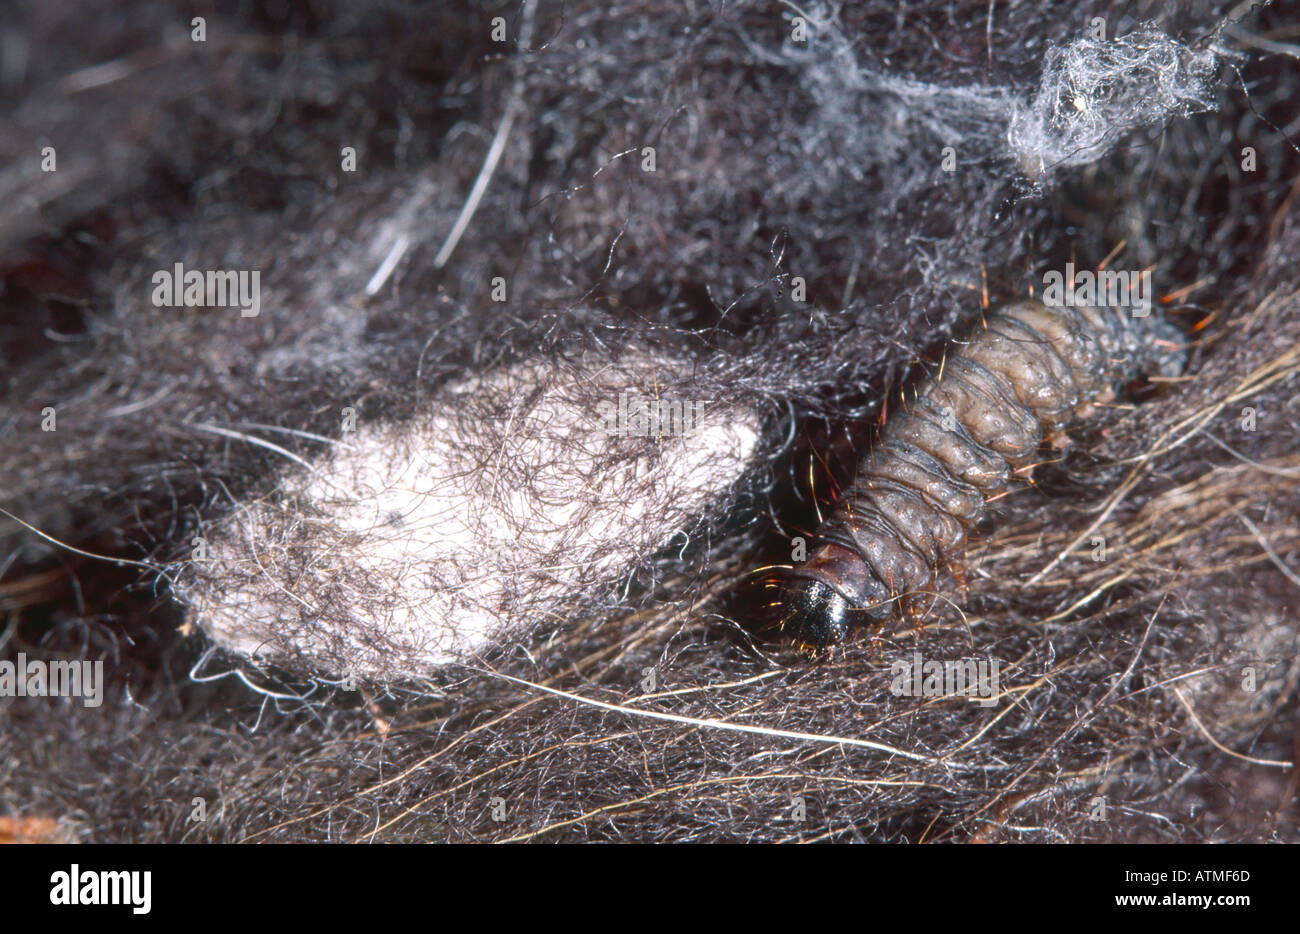 Clothes Moth Larva And Cocoon Stock Photo Royalty Free